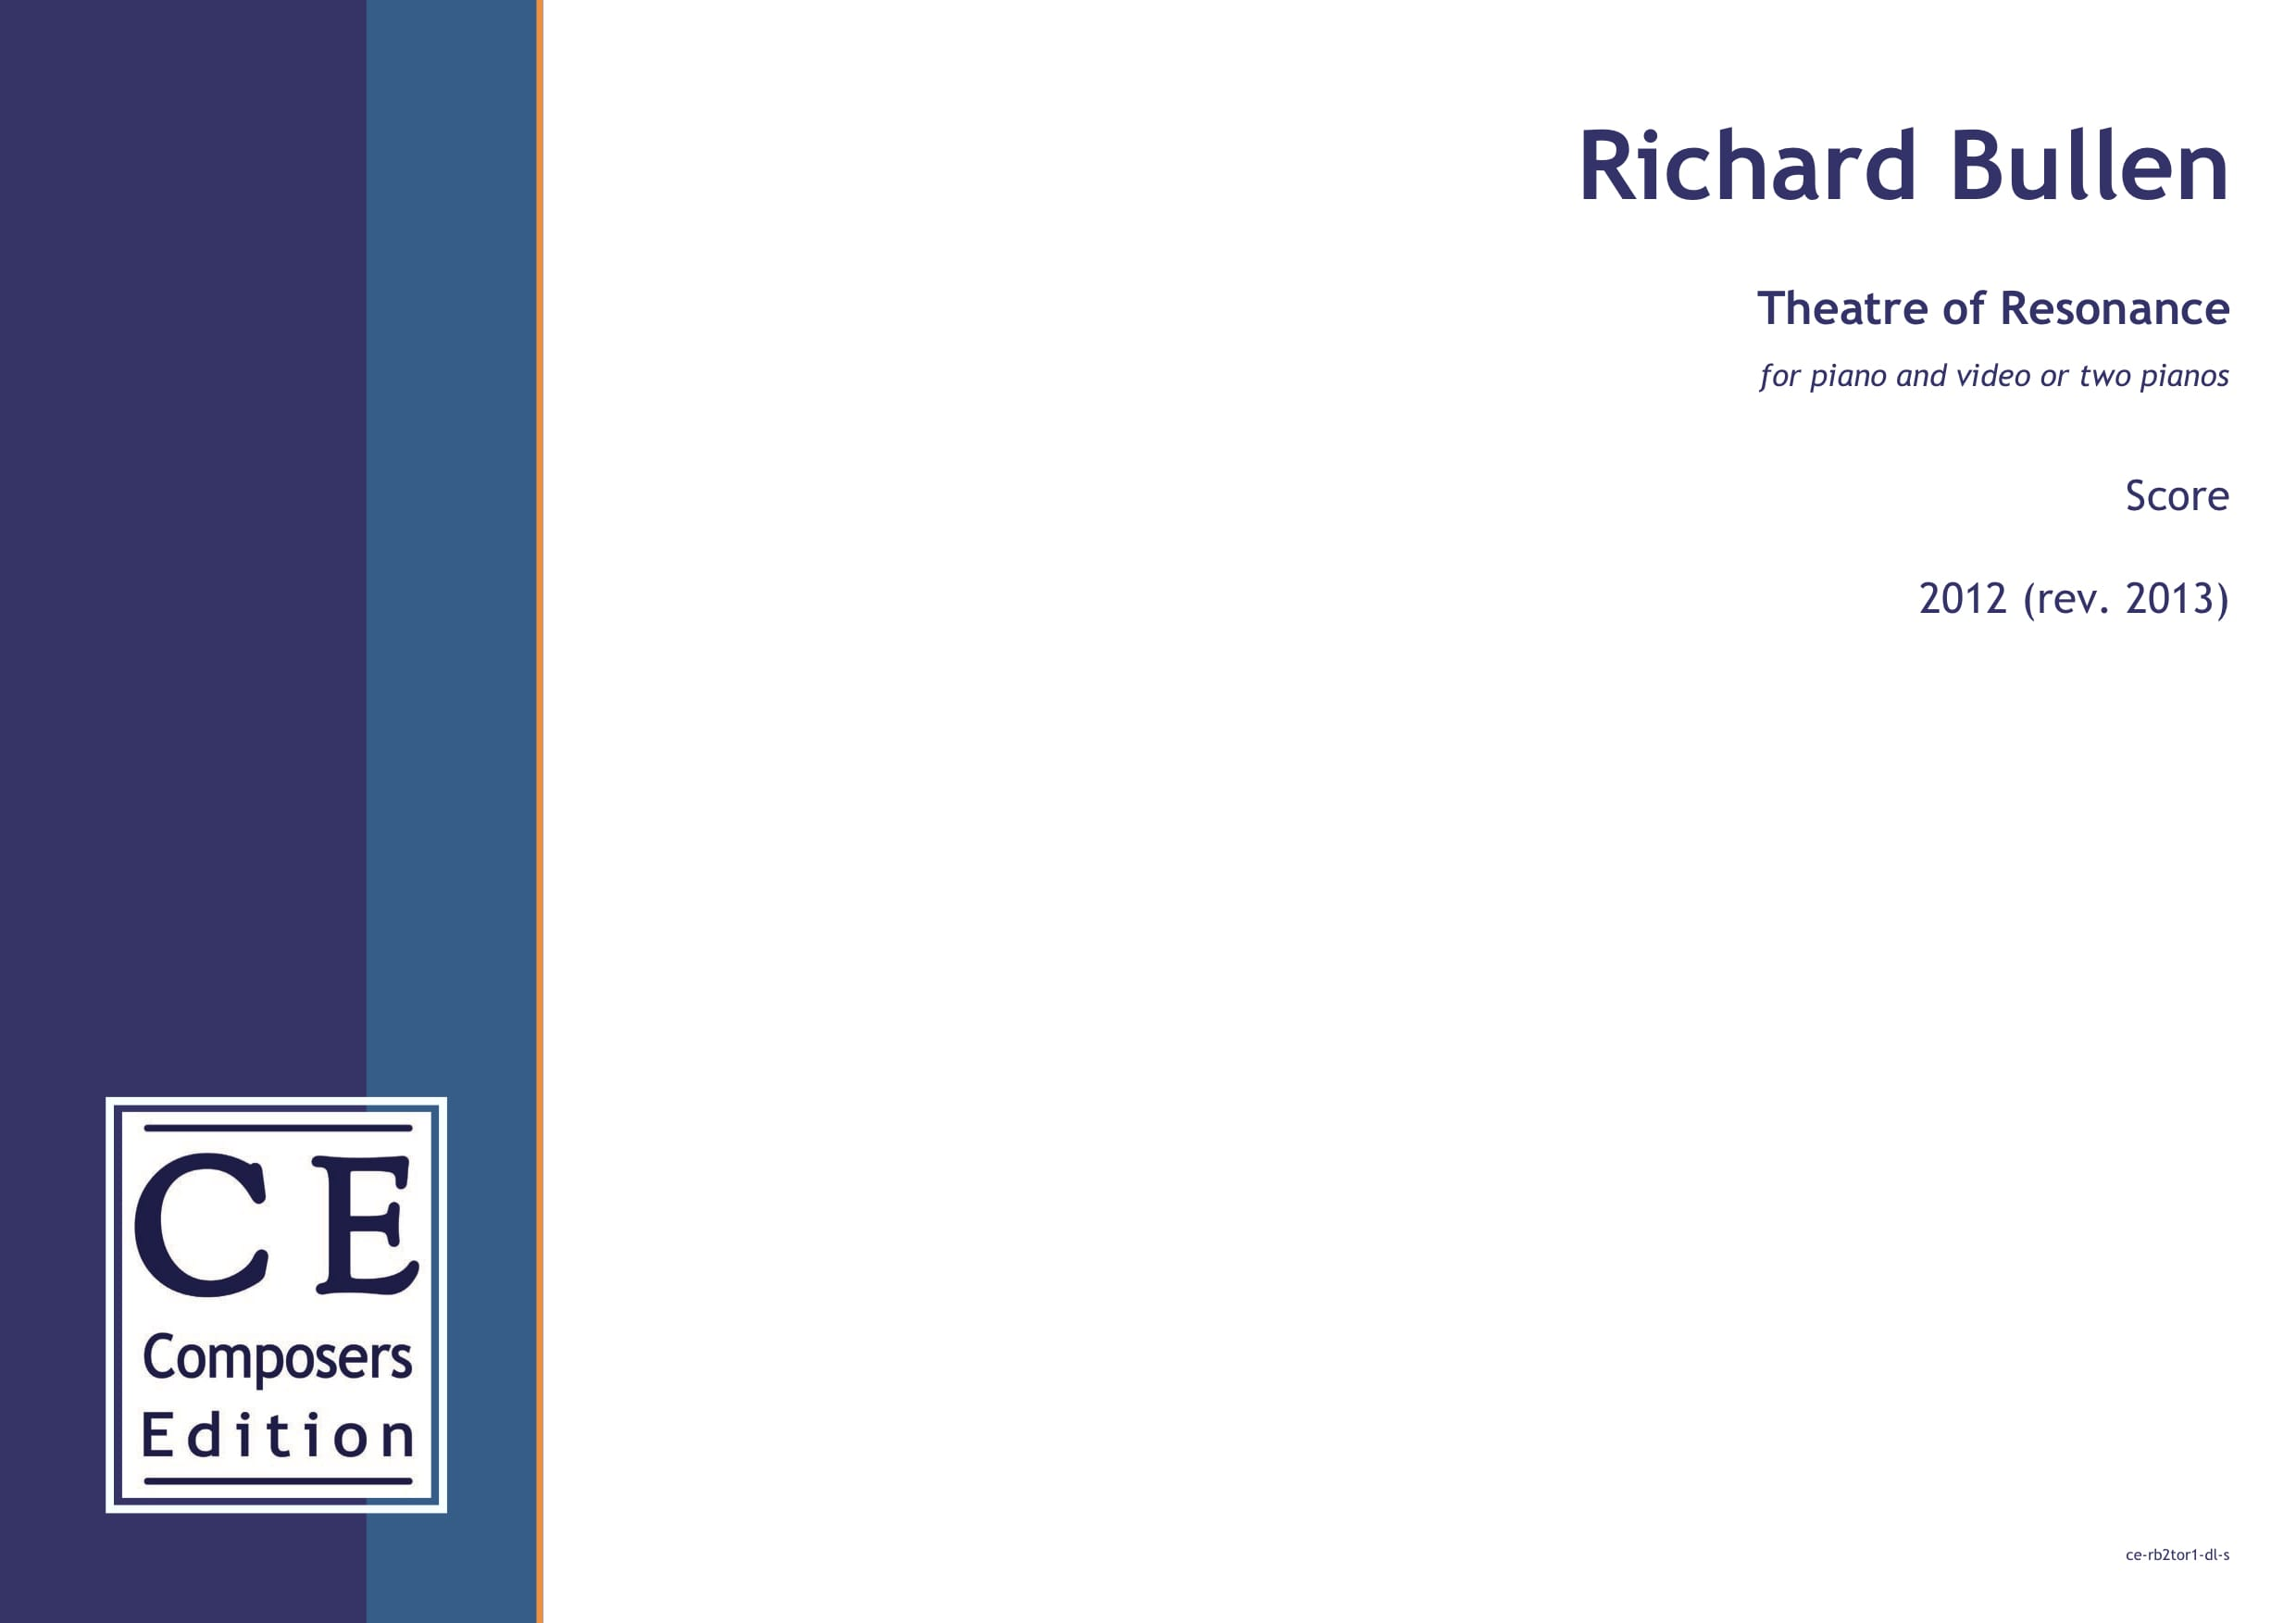 Richard Bullen: Theatre of Resonance for piano and video or two pianos